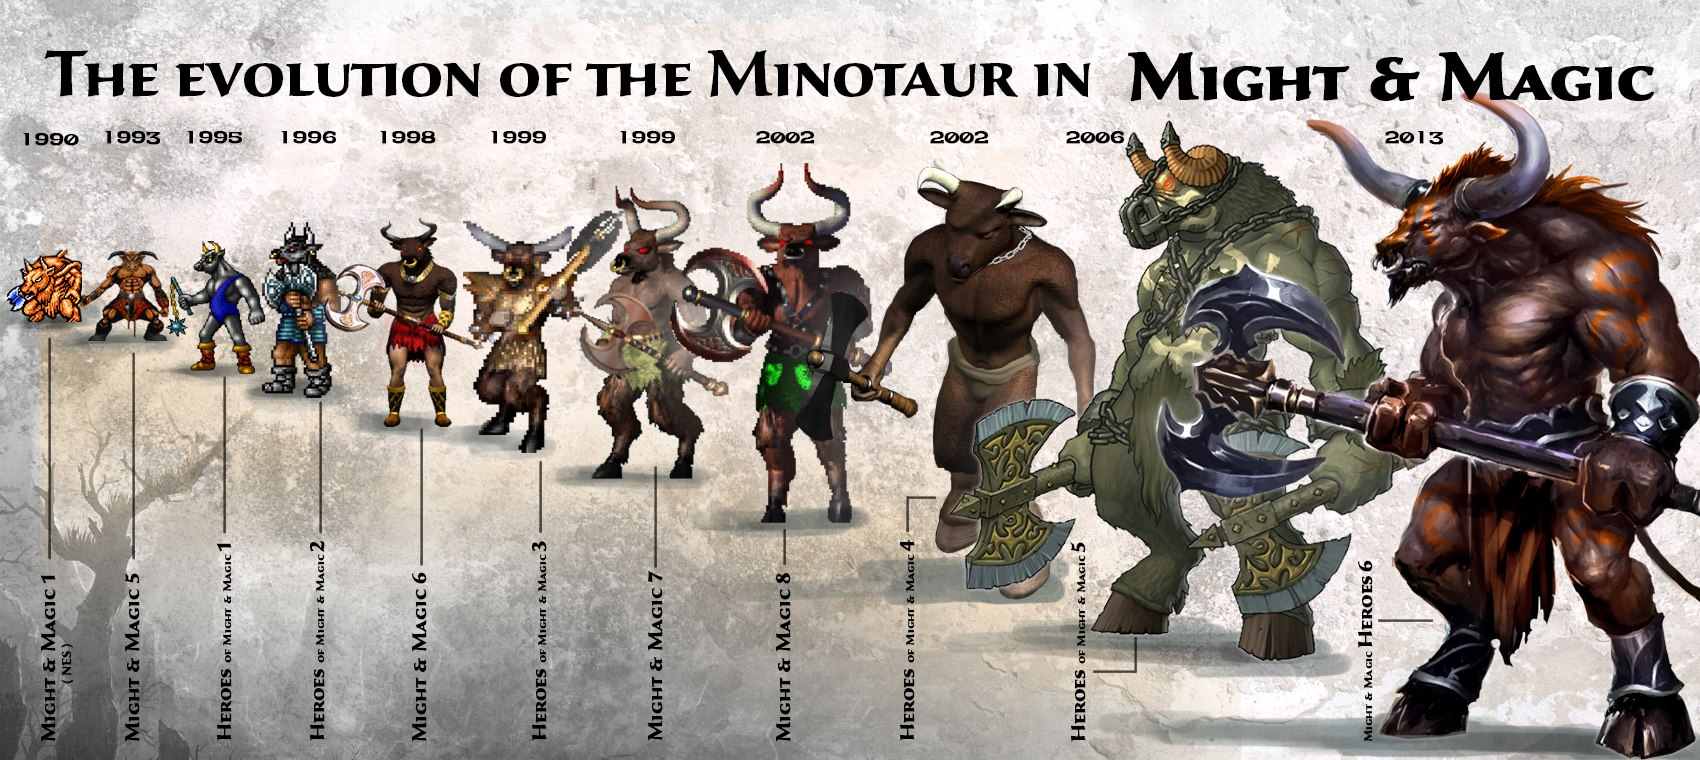 myth and the evolution of heroes Myth and heroes there have been several notable african americans who fought to break the myth and became heroes myth and the evolution of heroes essay.